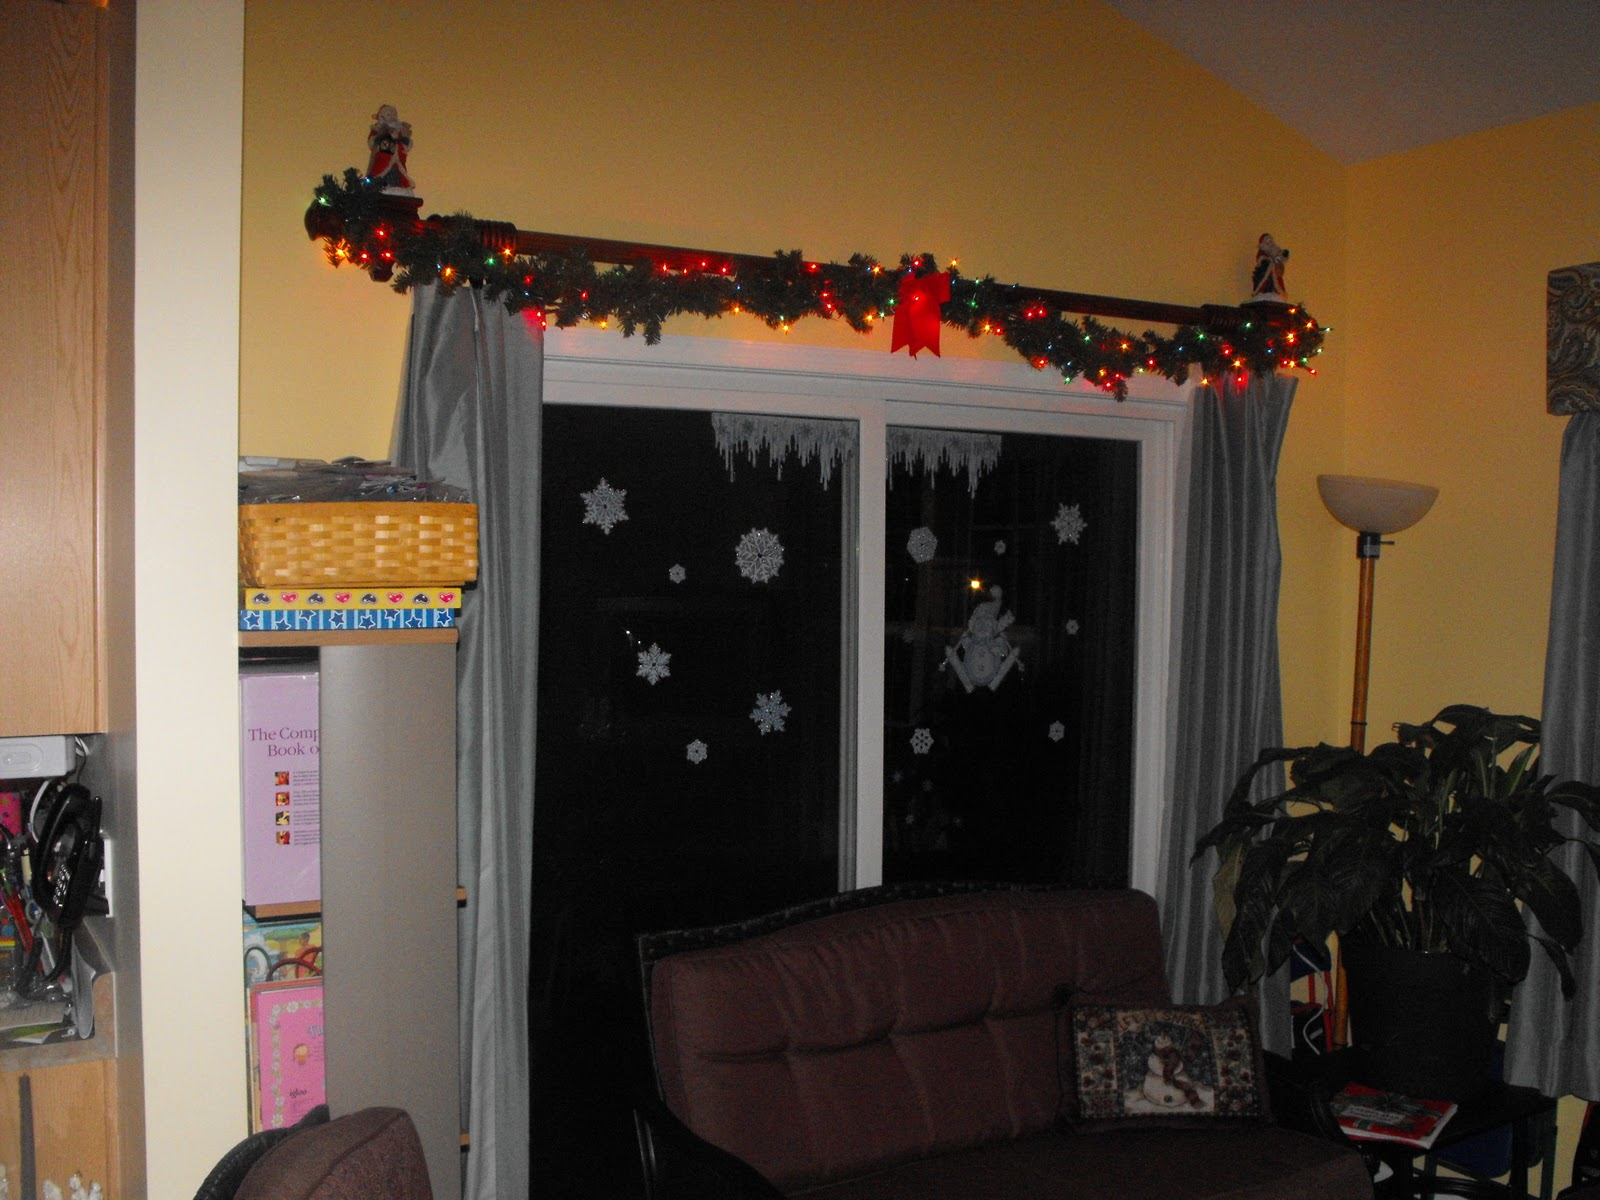 Christmas Decorations Sliding Glass Doors : Abundant chaos blessings inside of the house